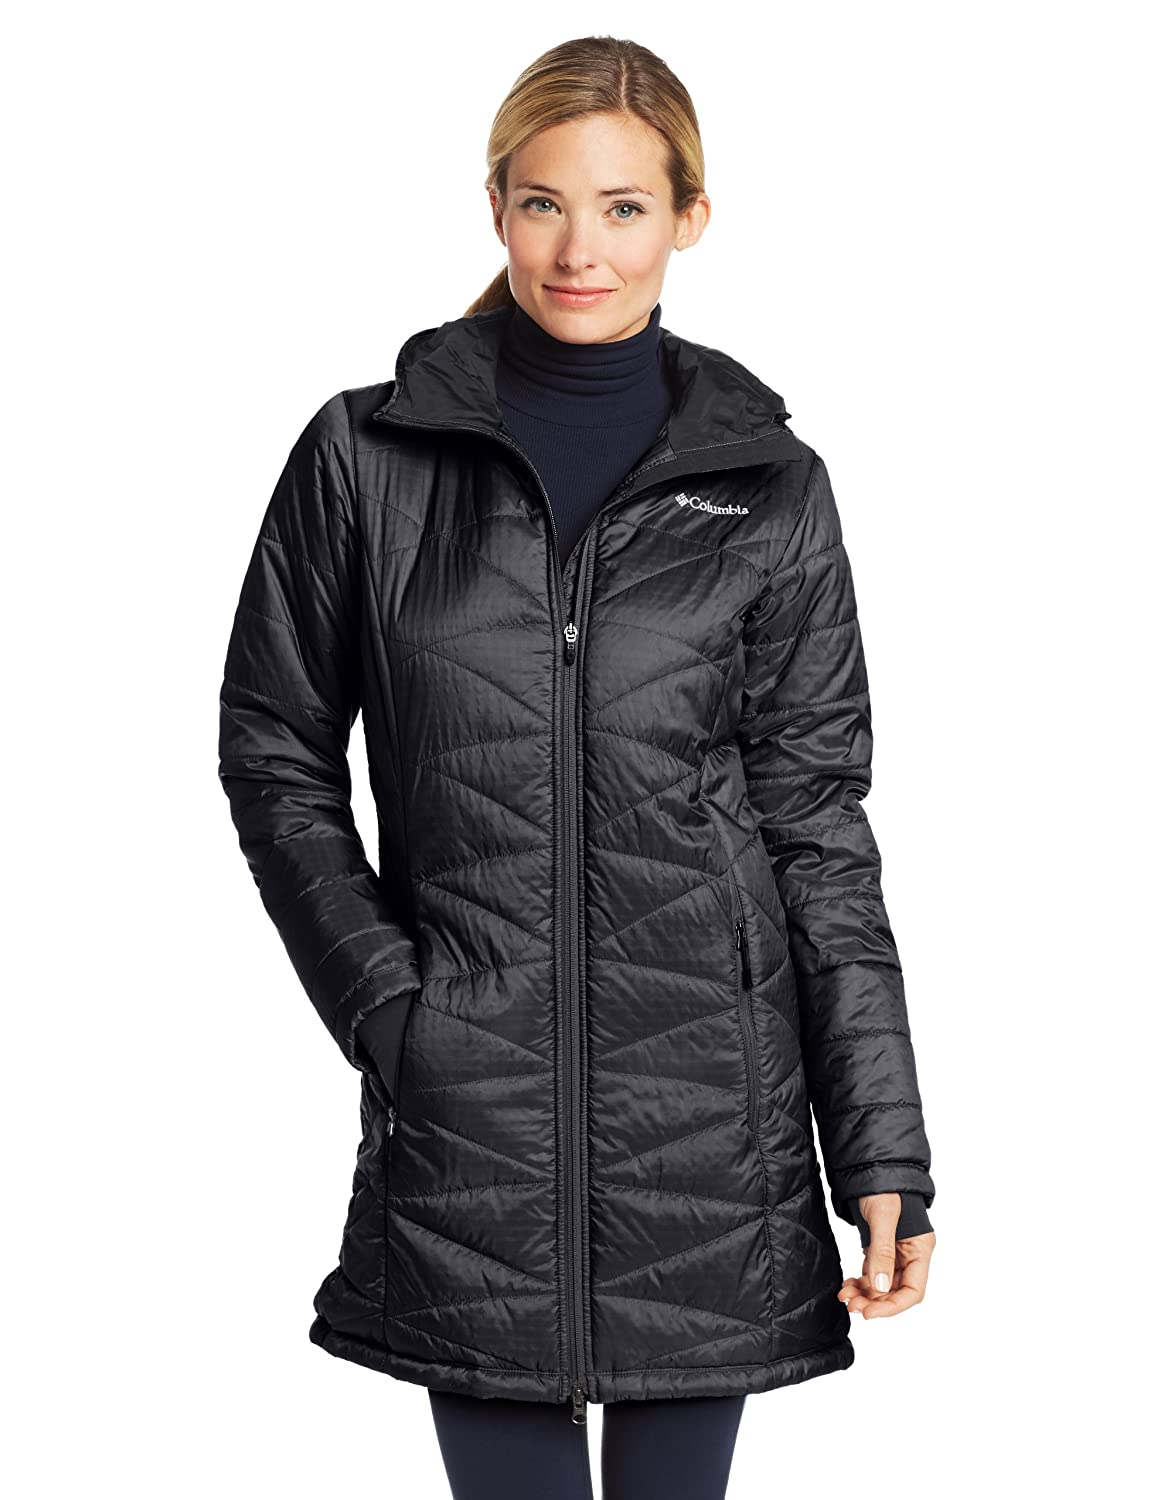 Amazon.com: Columbia Women's Mighty Lite Hooded Jacket: Sports ...